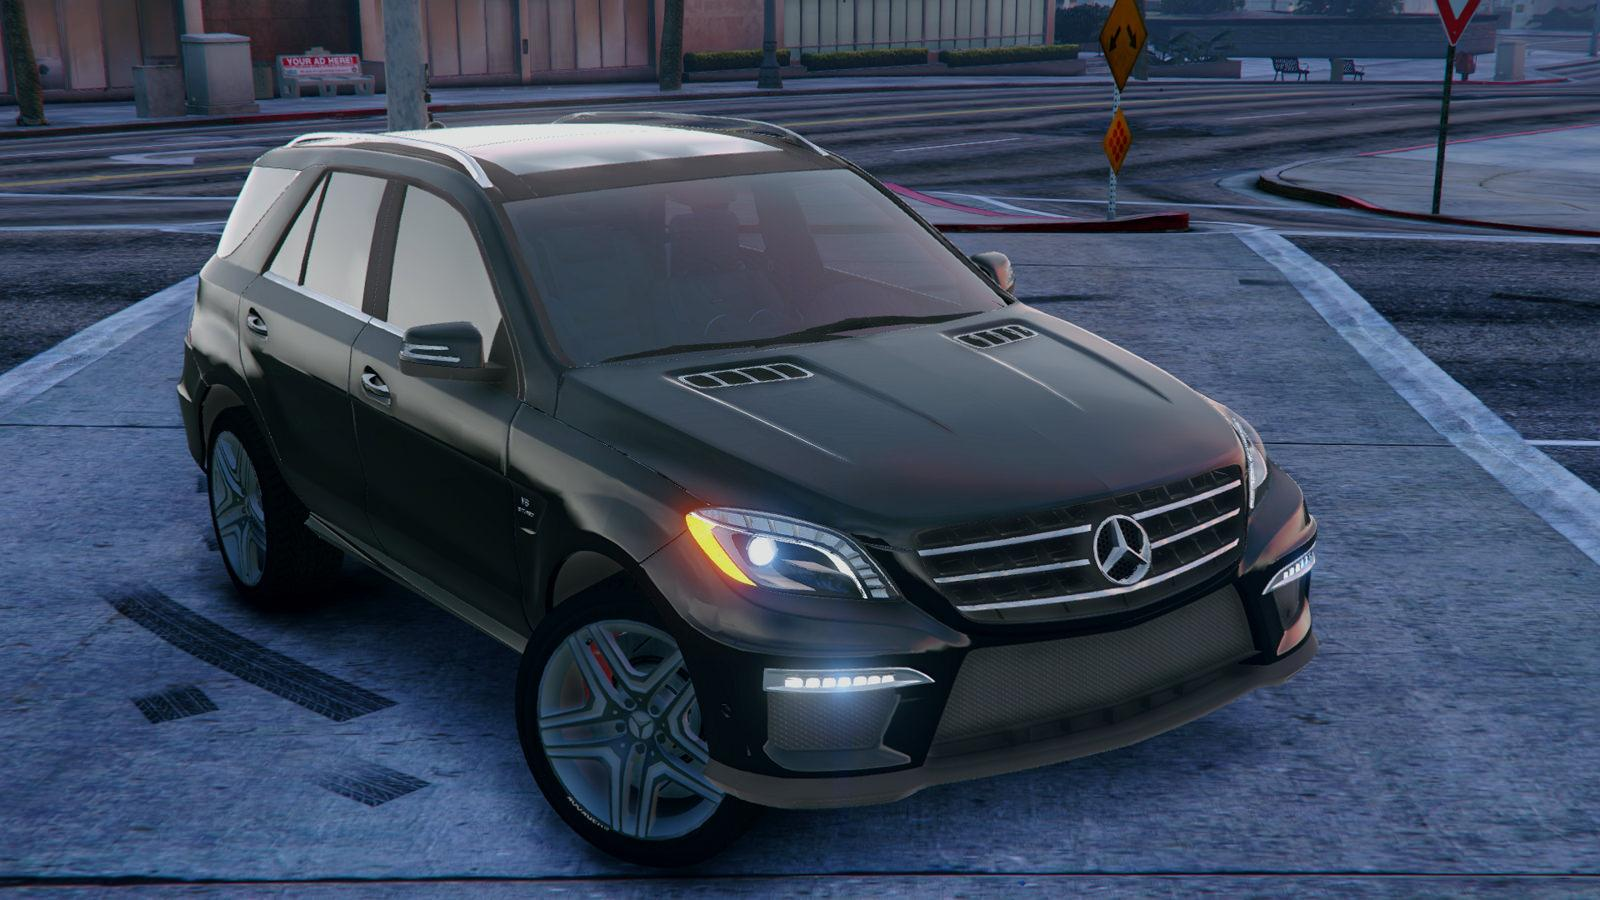 Mercedes benz ml63 amg 2014 gta5 for Mercedes benz ml 63 amg